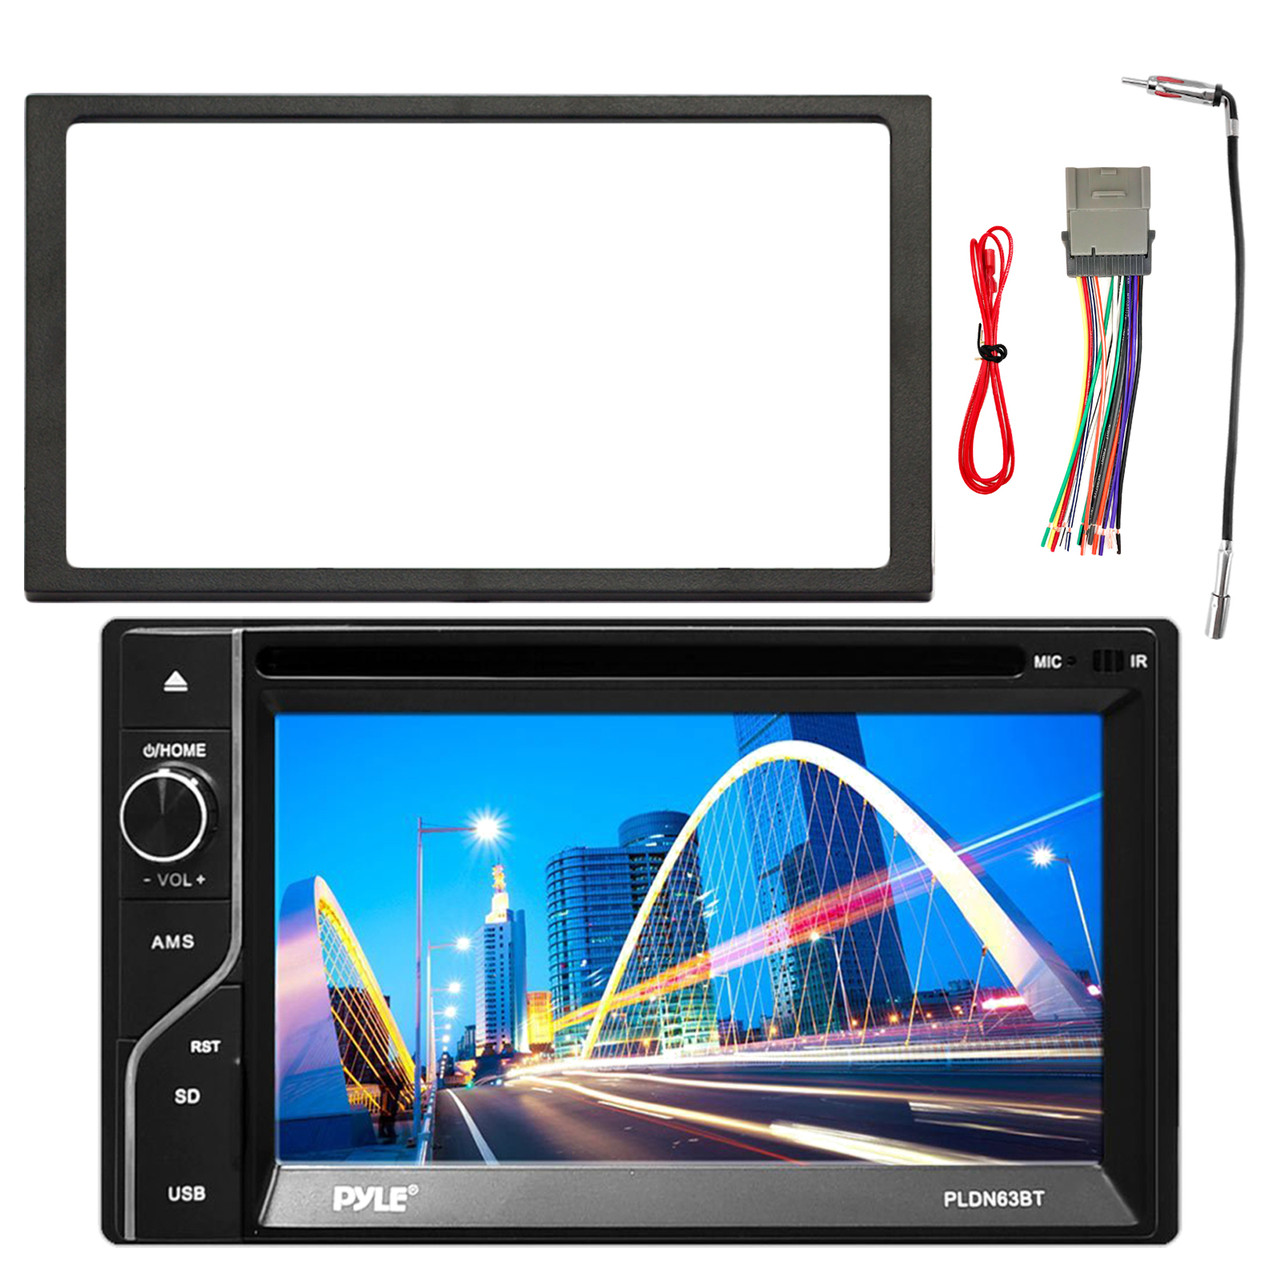 Pyle 6.5'' Touch Screen TFT/LCD Monitor MP3/USB AM/FM Bluetooth Receiver, on starcraft boat wiring harness, boat motor wiring harness, installing boat fuel tank, pontoon boat wiring harness, jet boat wiring harness,